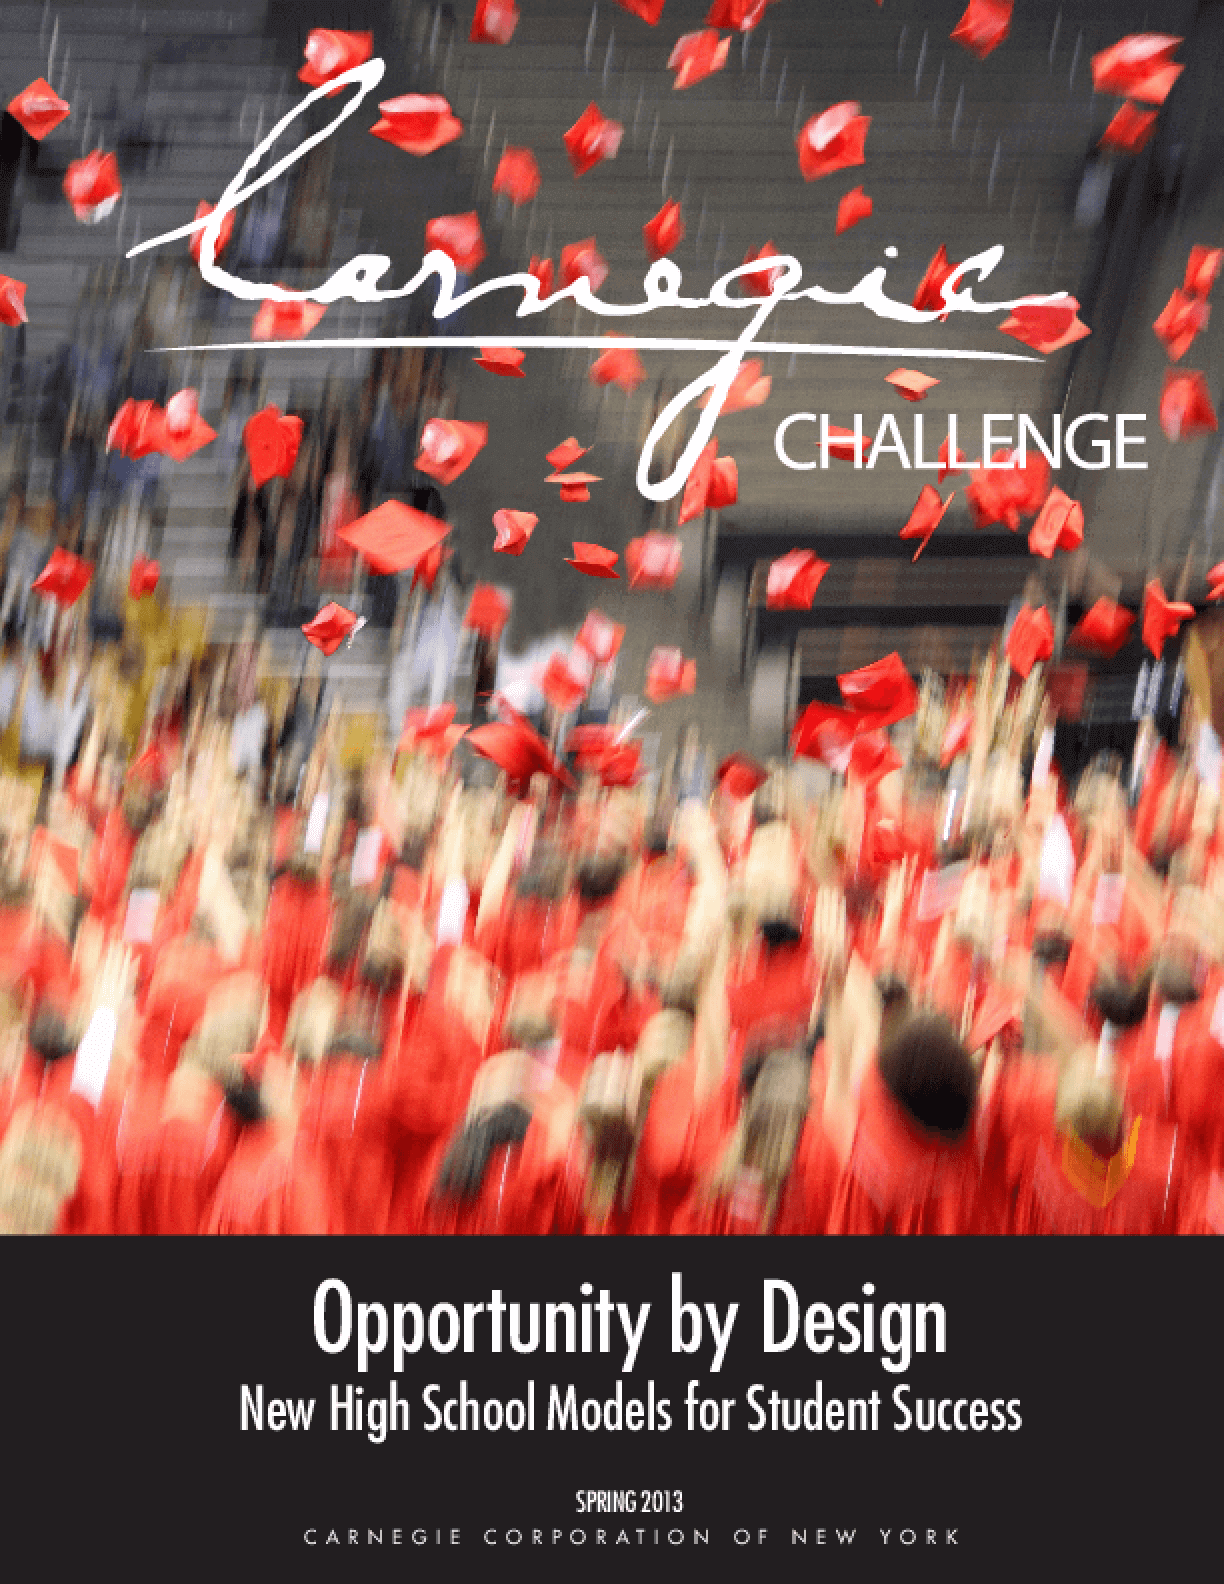 Opportunity by Design: New High School Models for Student Success